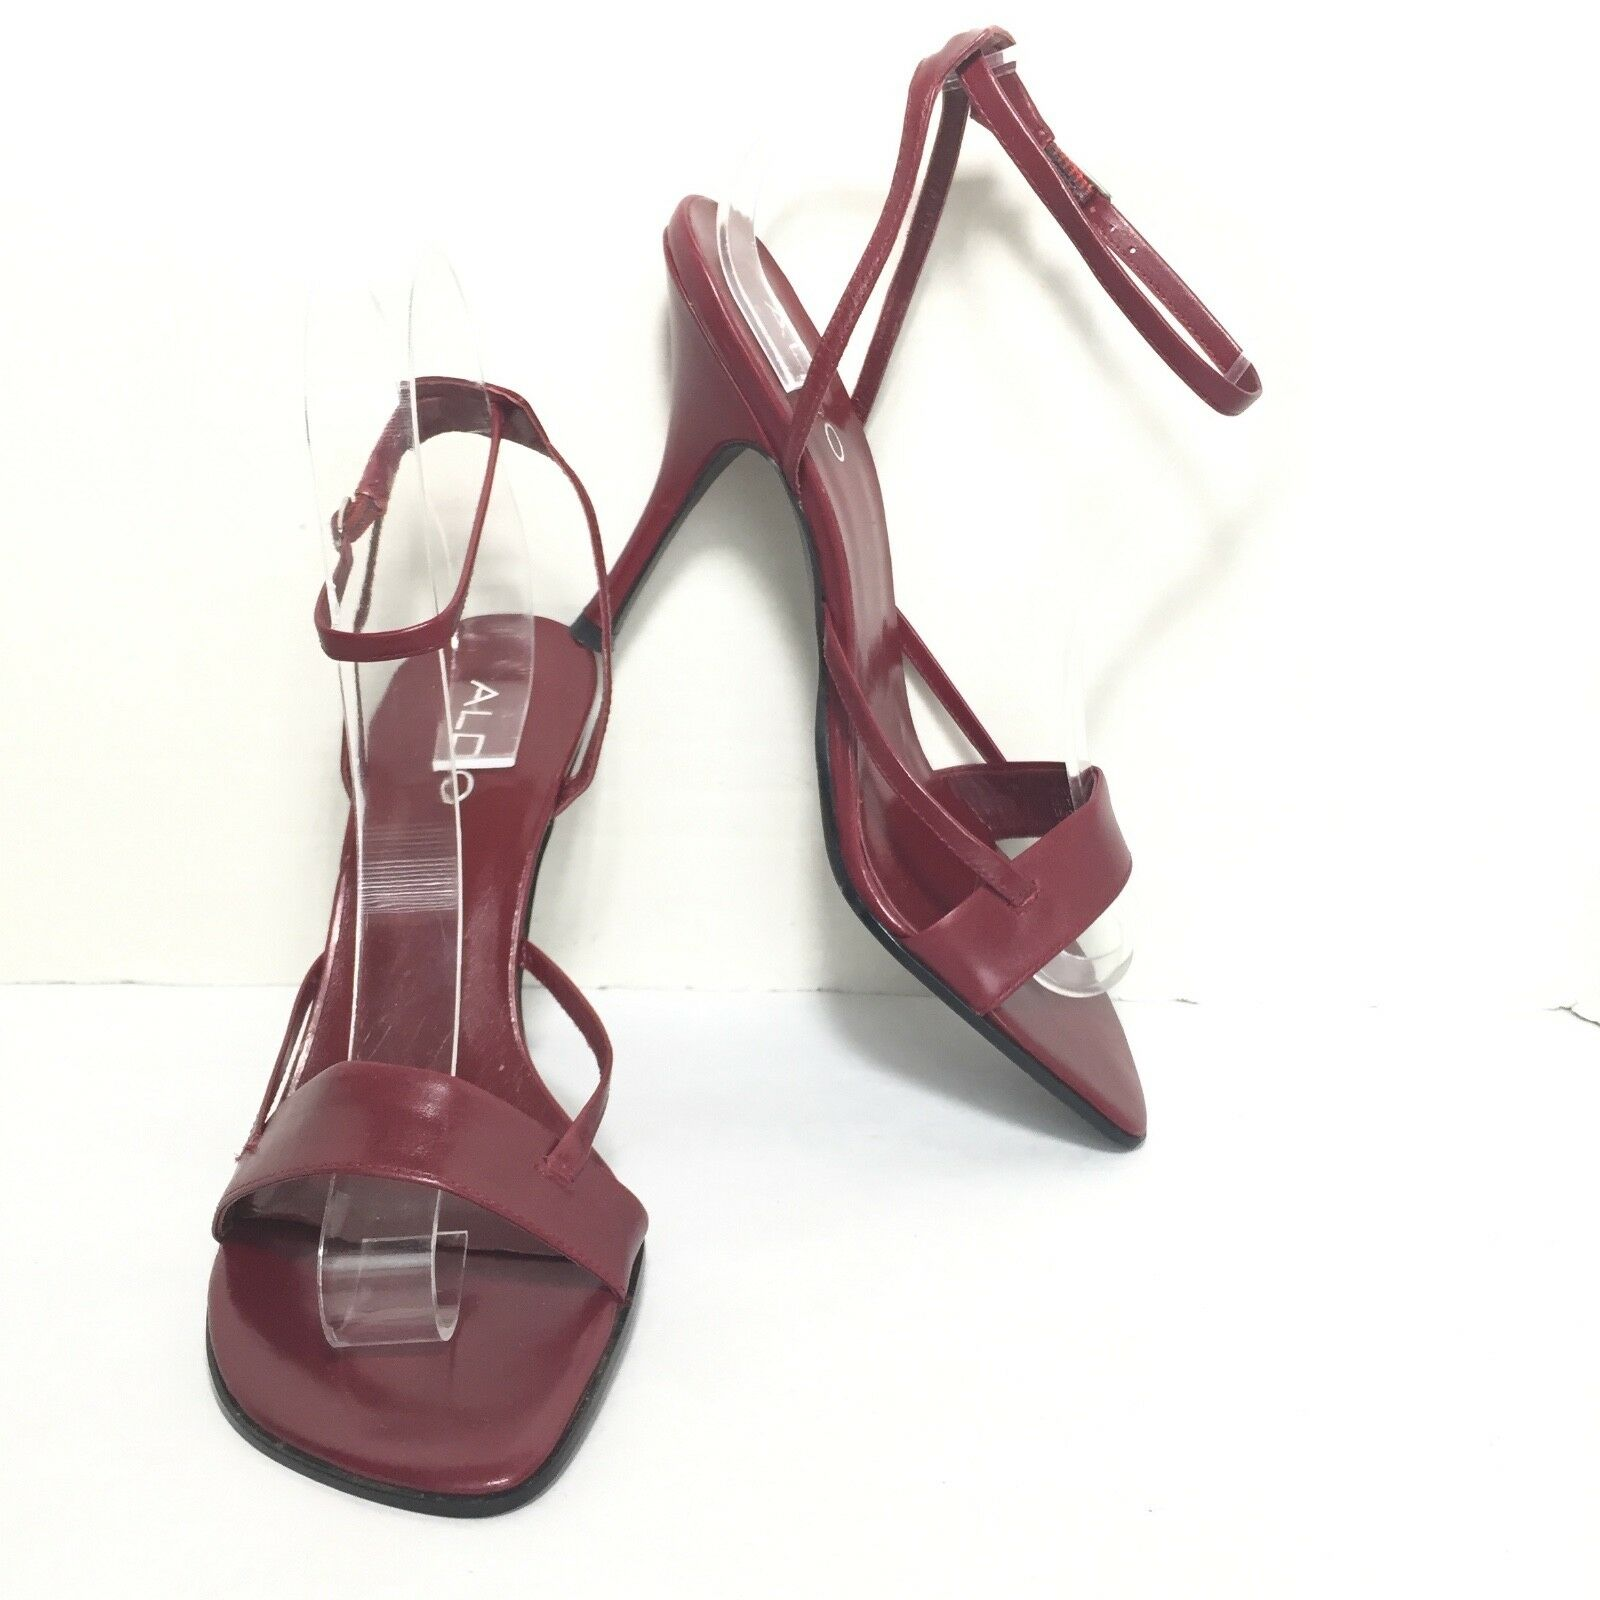 ALDO Women's Maroon Red Leather Ankle Strap High Heel Sandals Size US 6.5 M